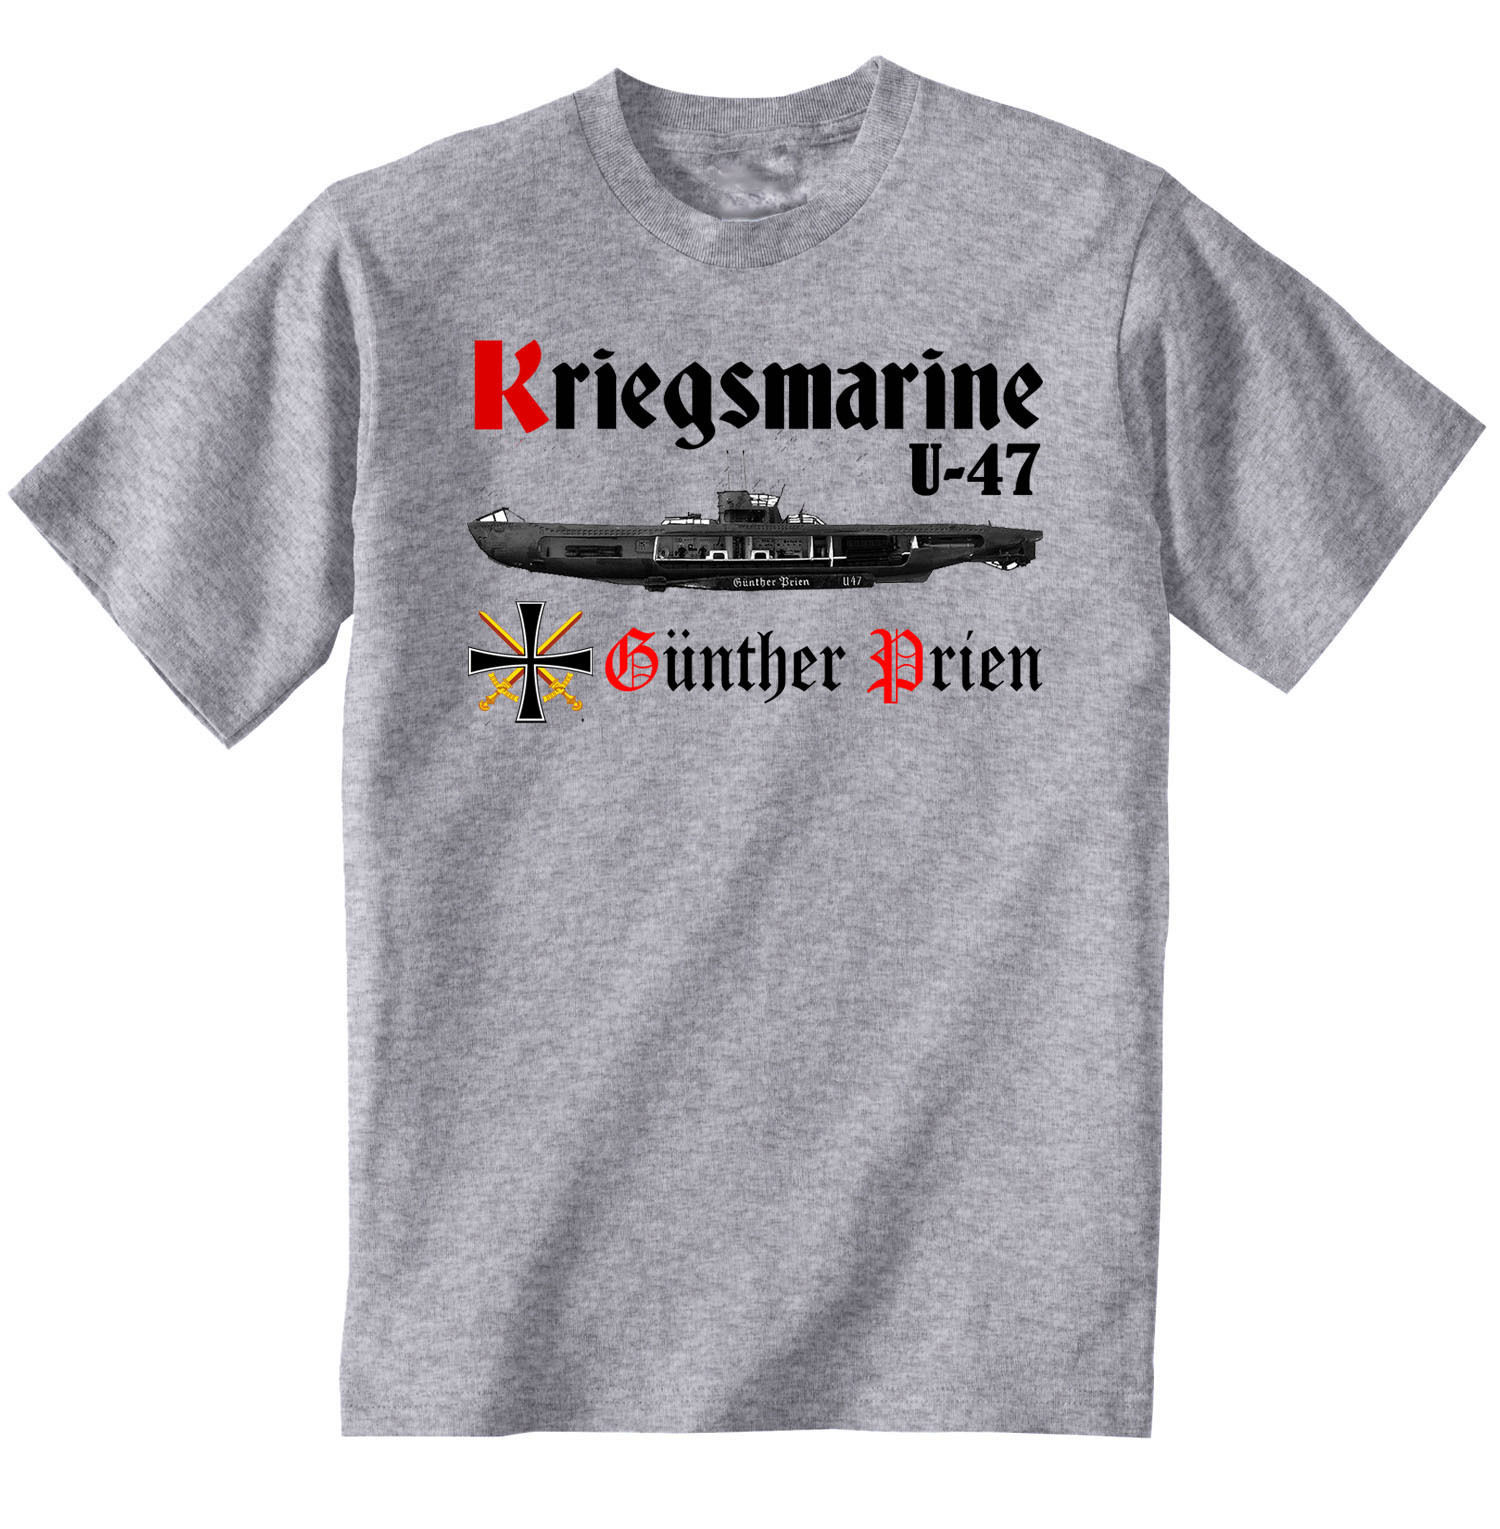 Primary image for KRIEGSMARINE U-47 GUNTHER PRIEN WWII WORLD WAR II - NEW GRAPHIC GREY TSHIRT